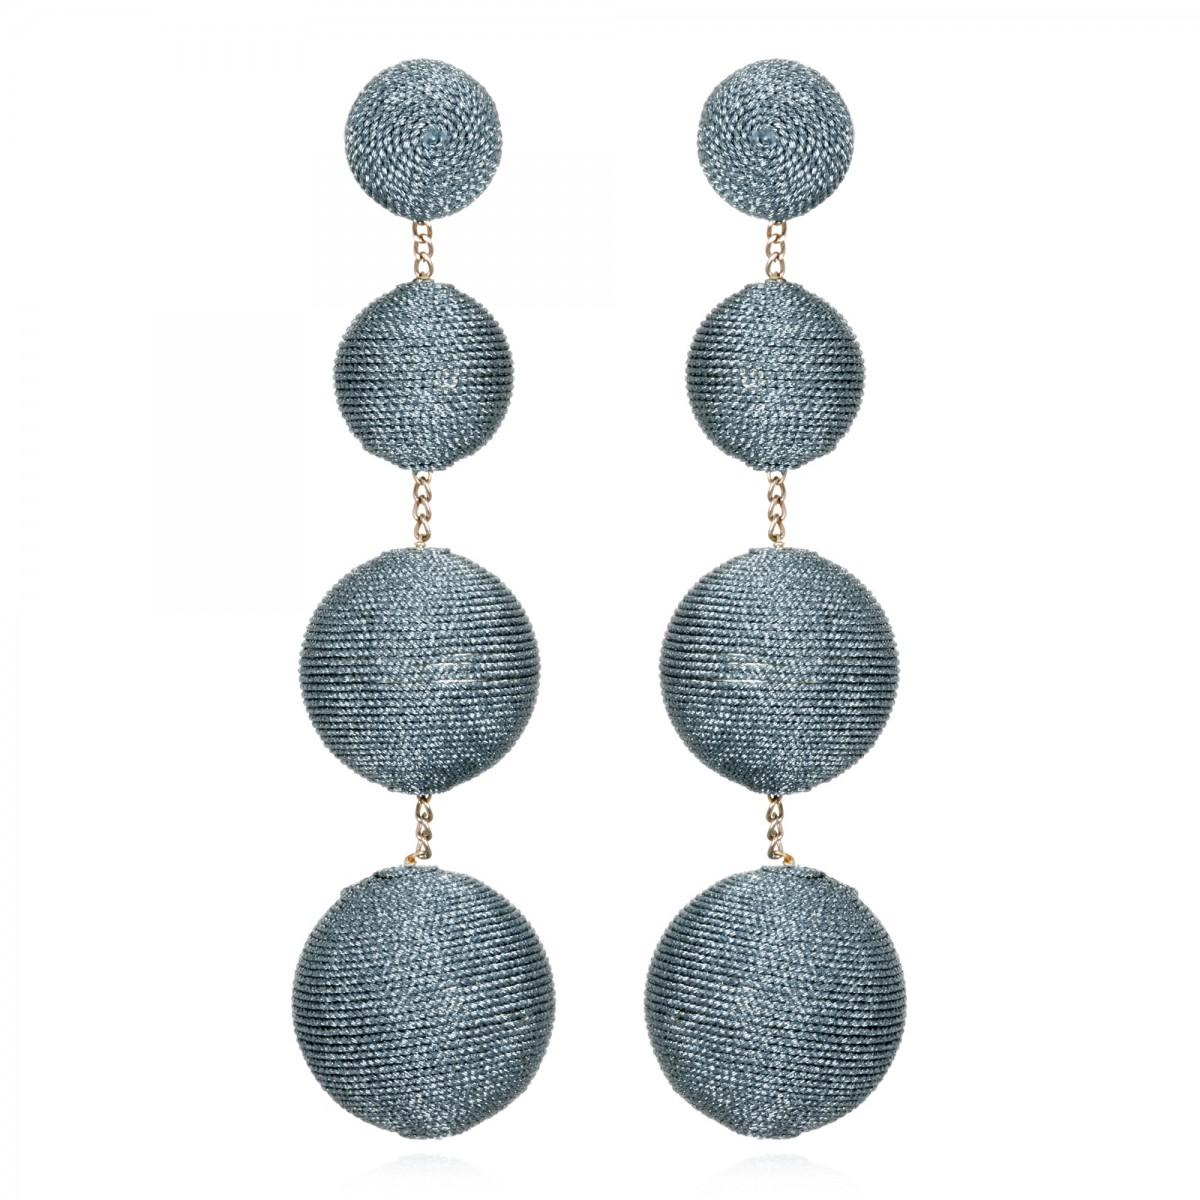 Ice Blue Gumball Earrings by SUZANNA DAI